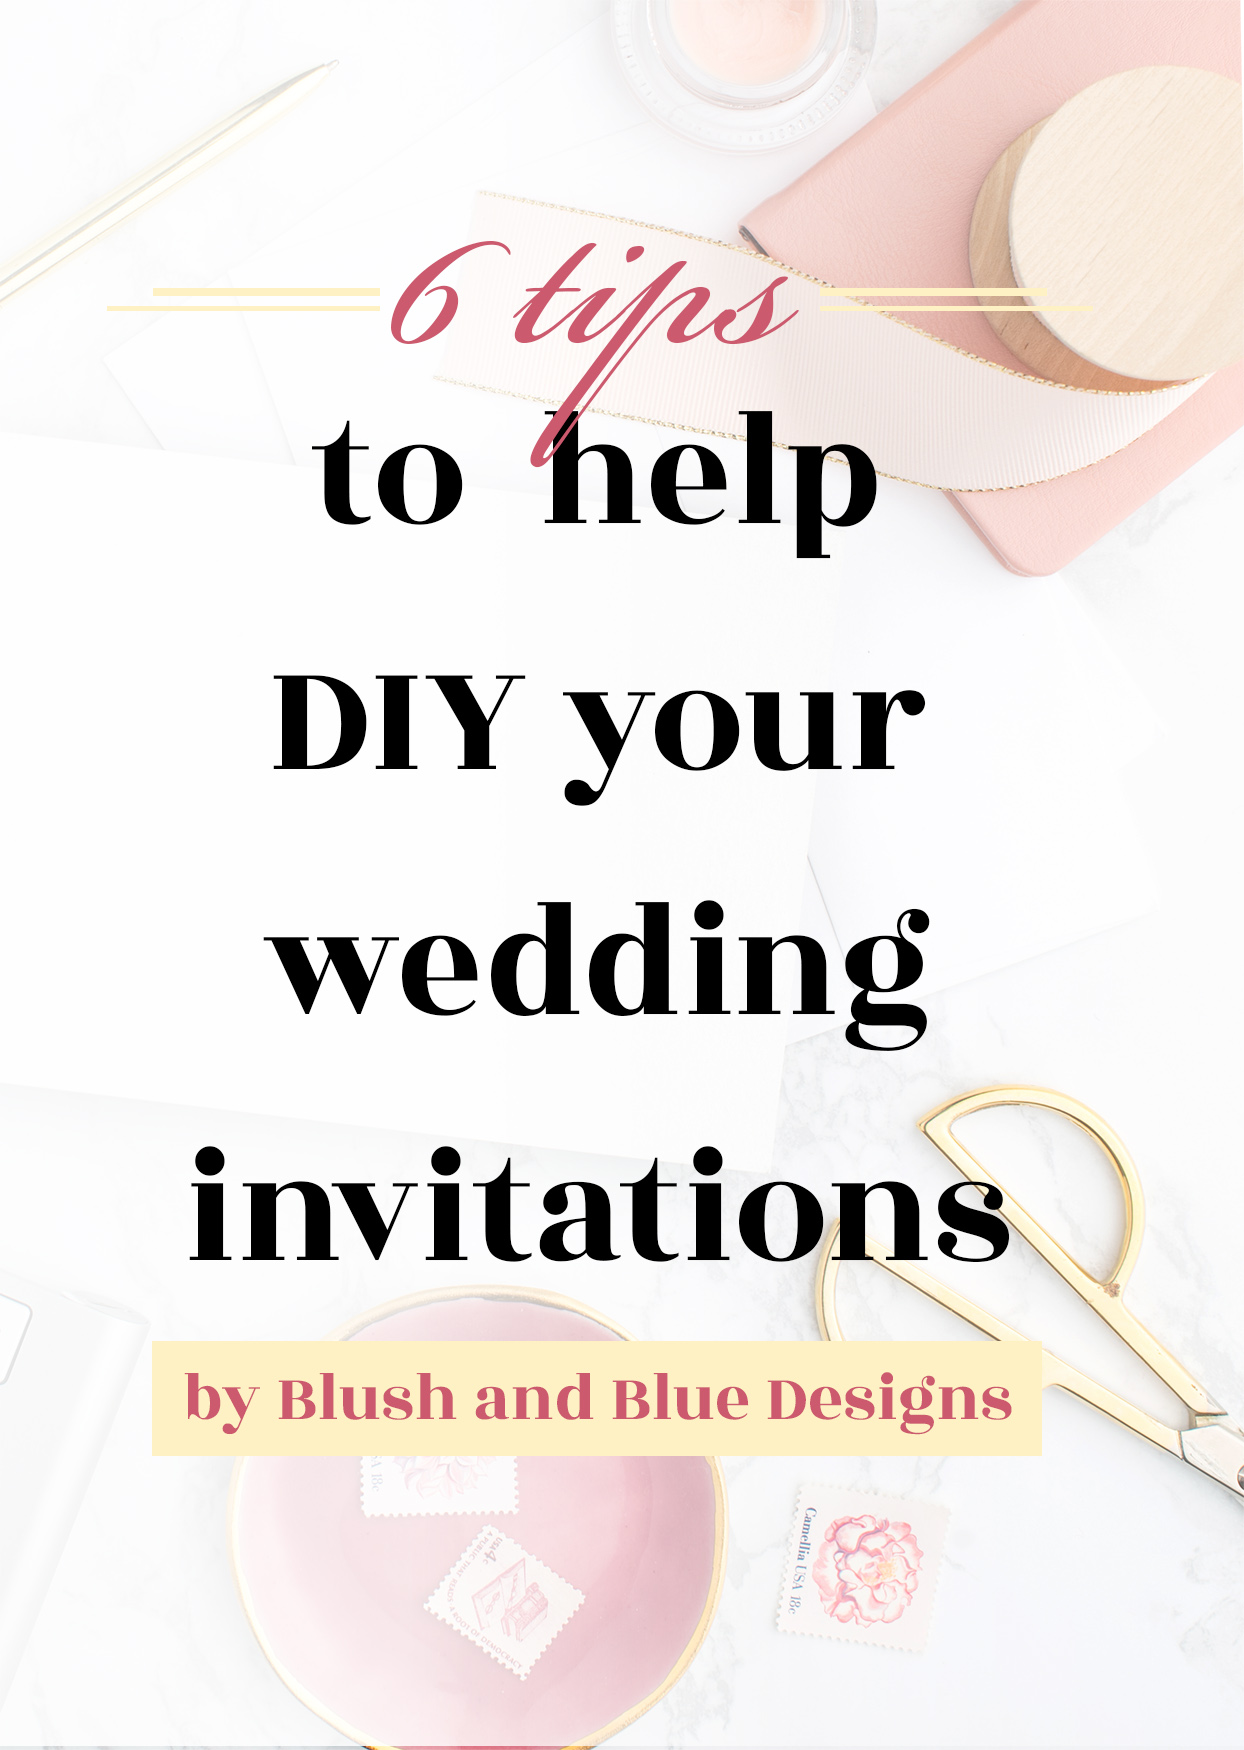 6 tips to help DIY your wedding invitations, blush and blue designs professional studio tips for designing and printing your own wedding invitations.